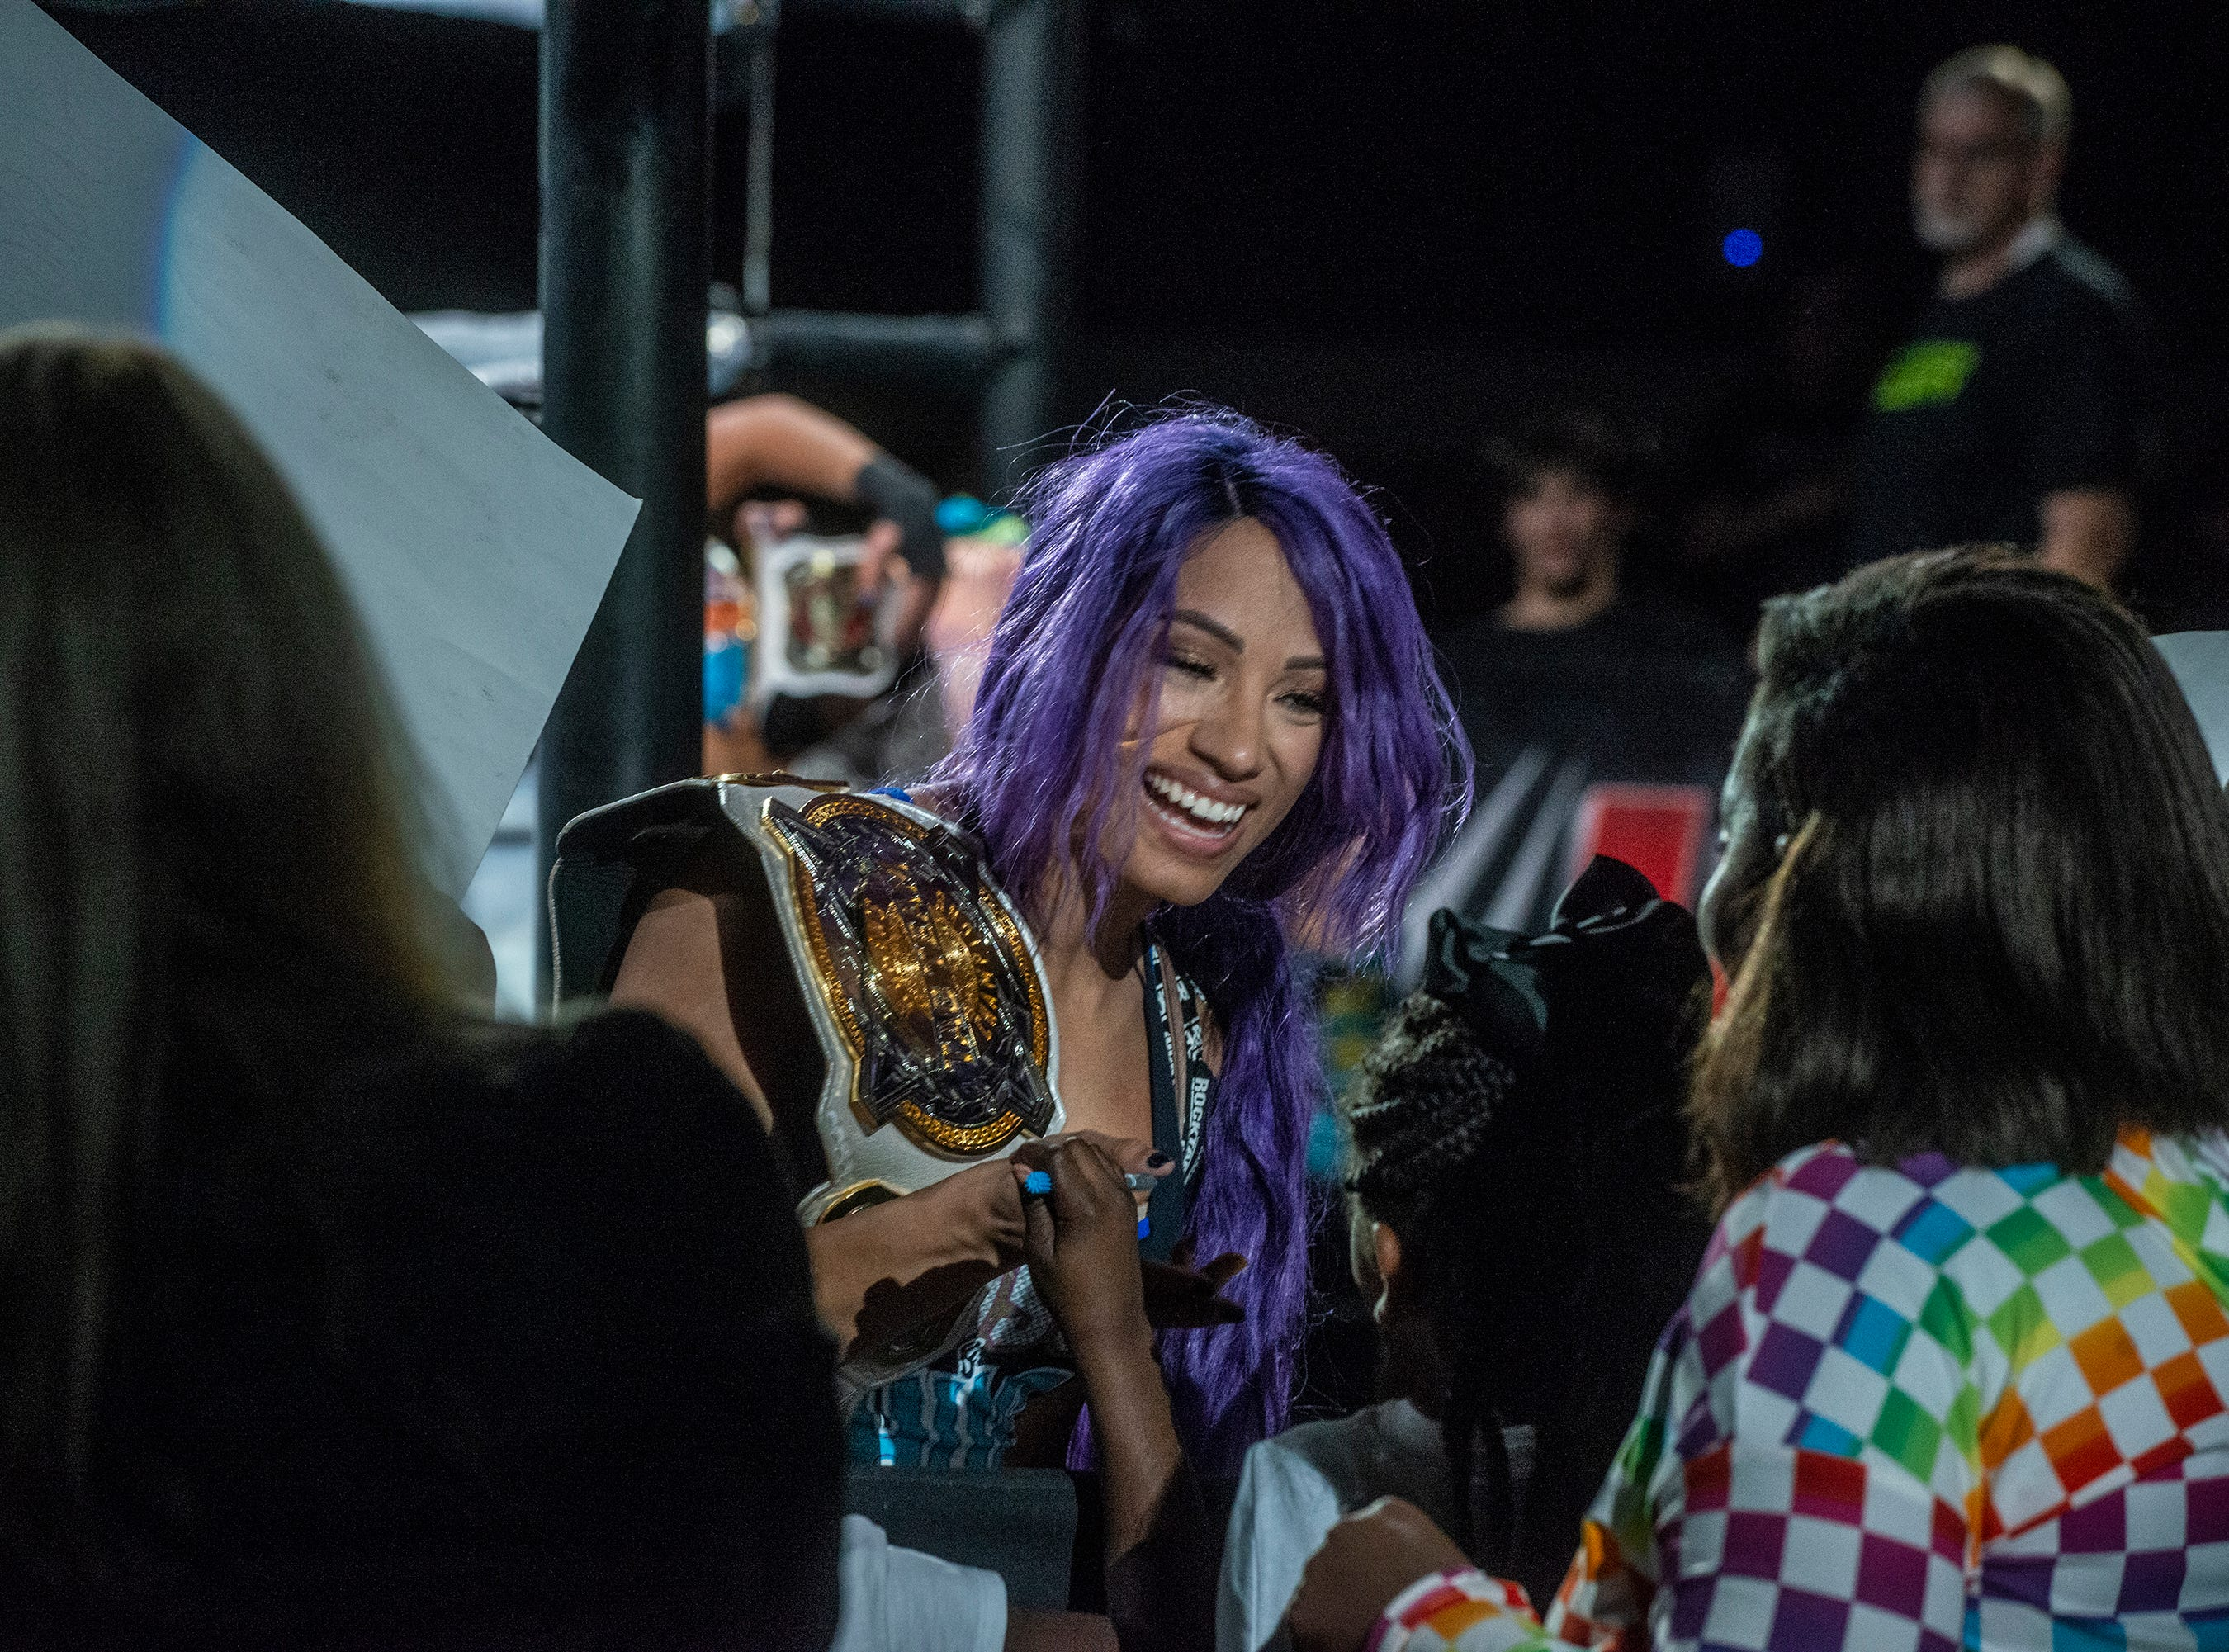 Sasha Banks greets the crowd after her match. Sasha Banks and Bayley defend their tag team championship against the Riott Squad. WWE Live Road to Wrestlemania came to Garrett Coliseum in Montgomery on Sunday, Feb. 24, 2019.